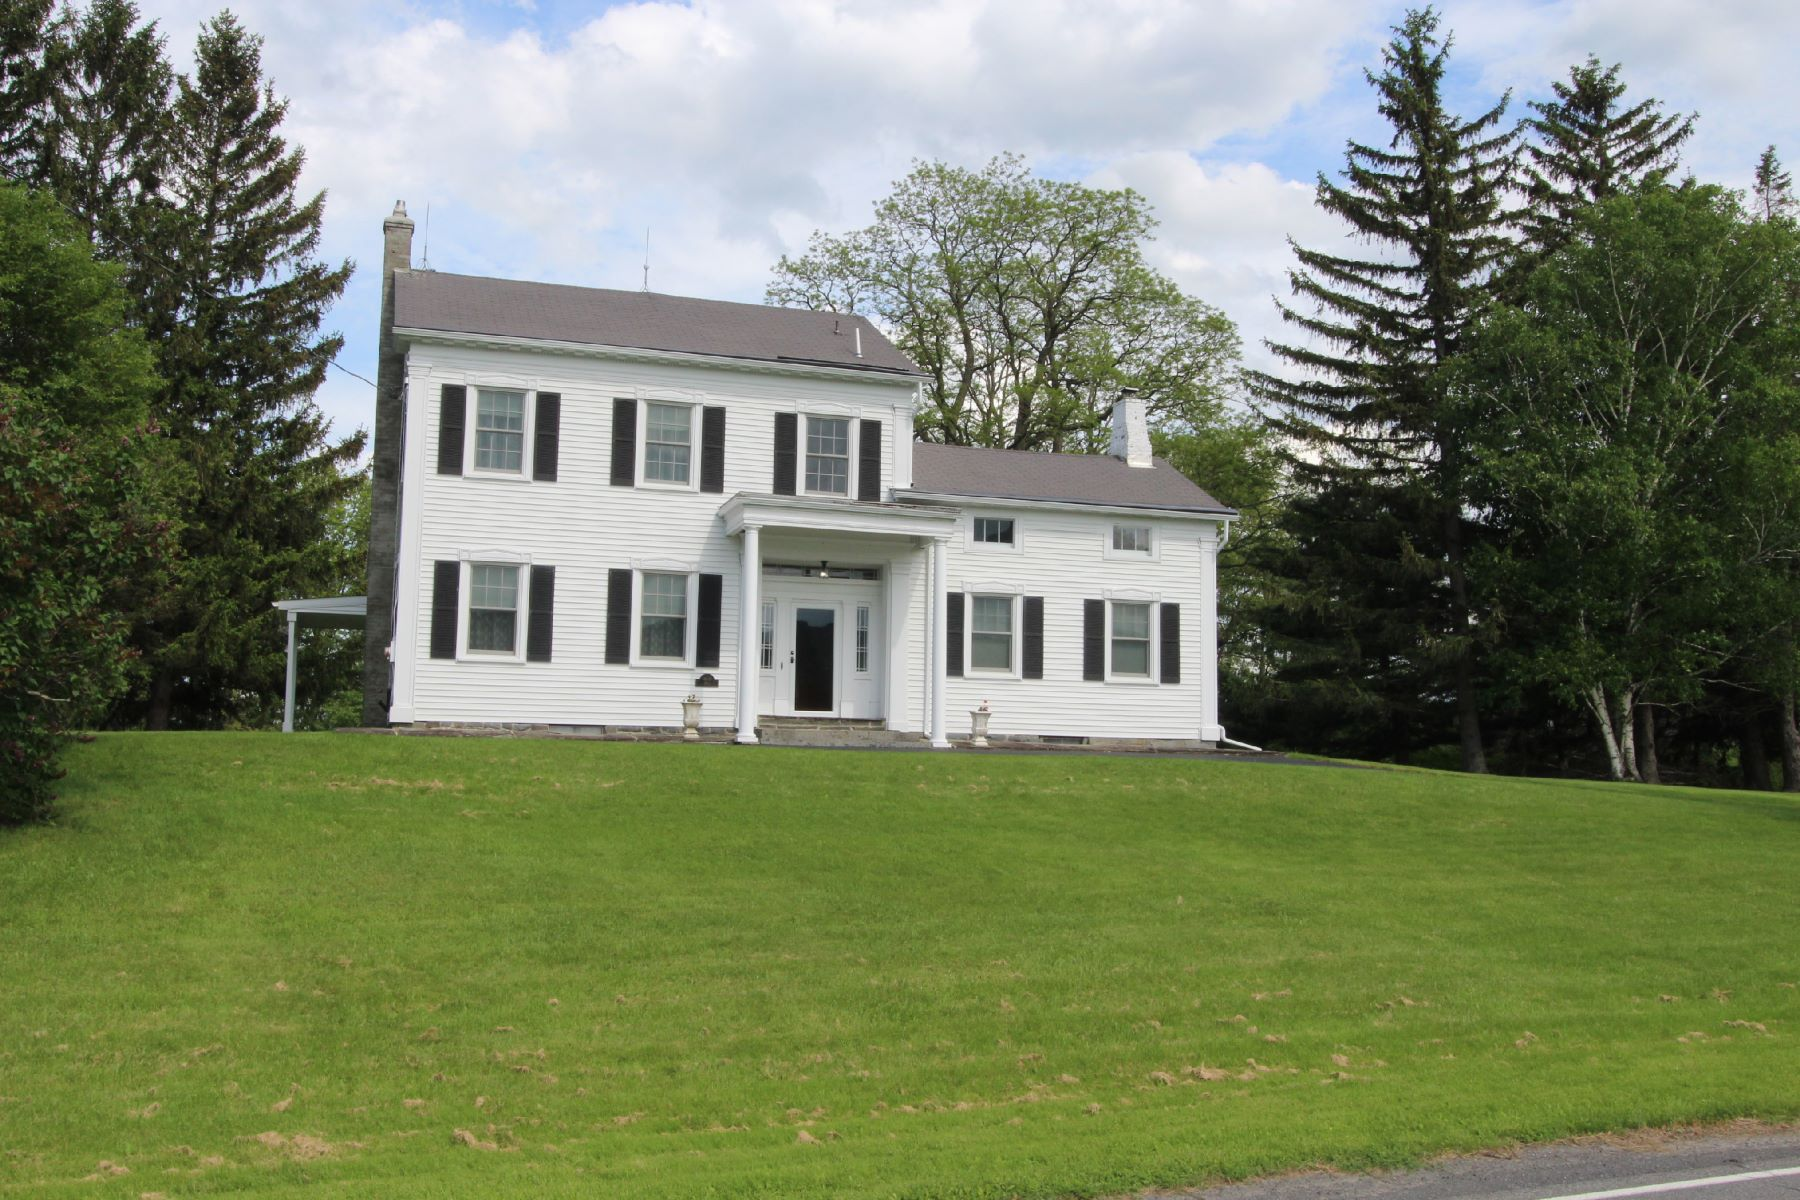 Single Family Homes for Active at Elegant Colonial w/ Views to Helderberg Escarpment 560 Meadowdale Rd Altamont, New York 12009 United States